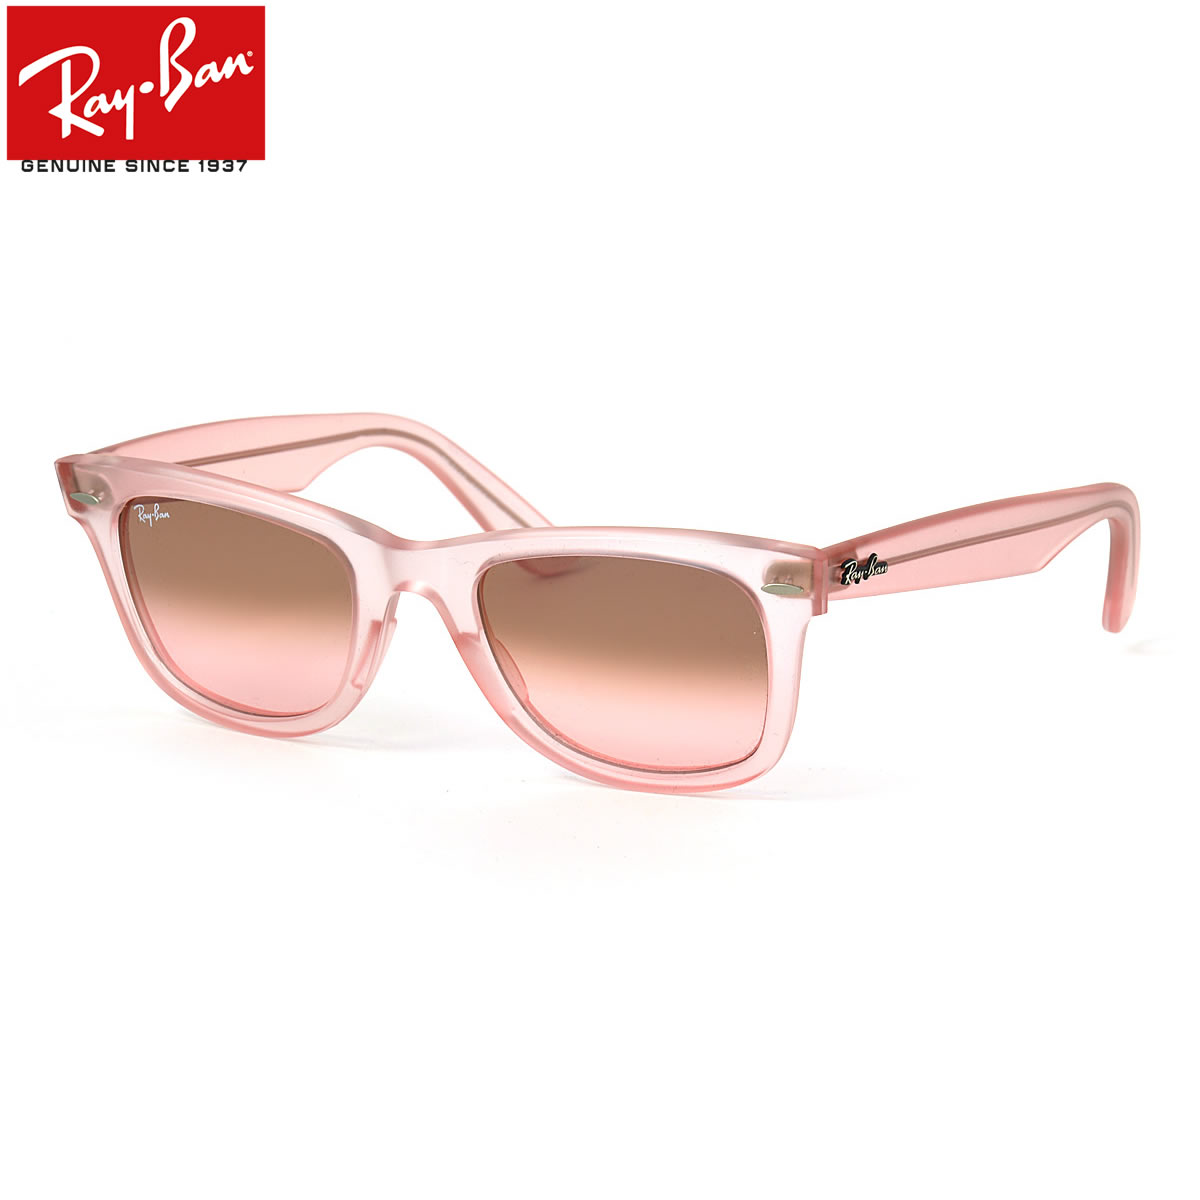 ray ban rb2140 price in pakistan